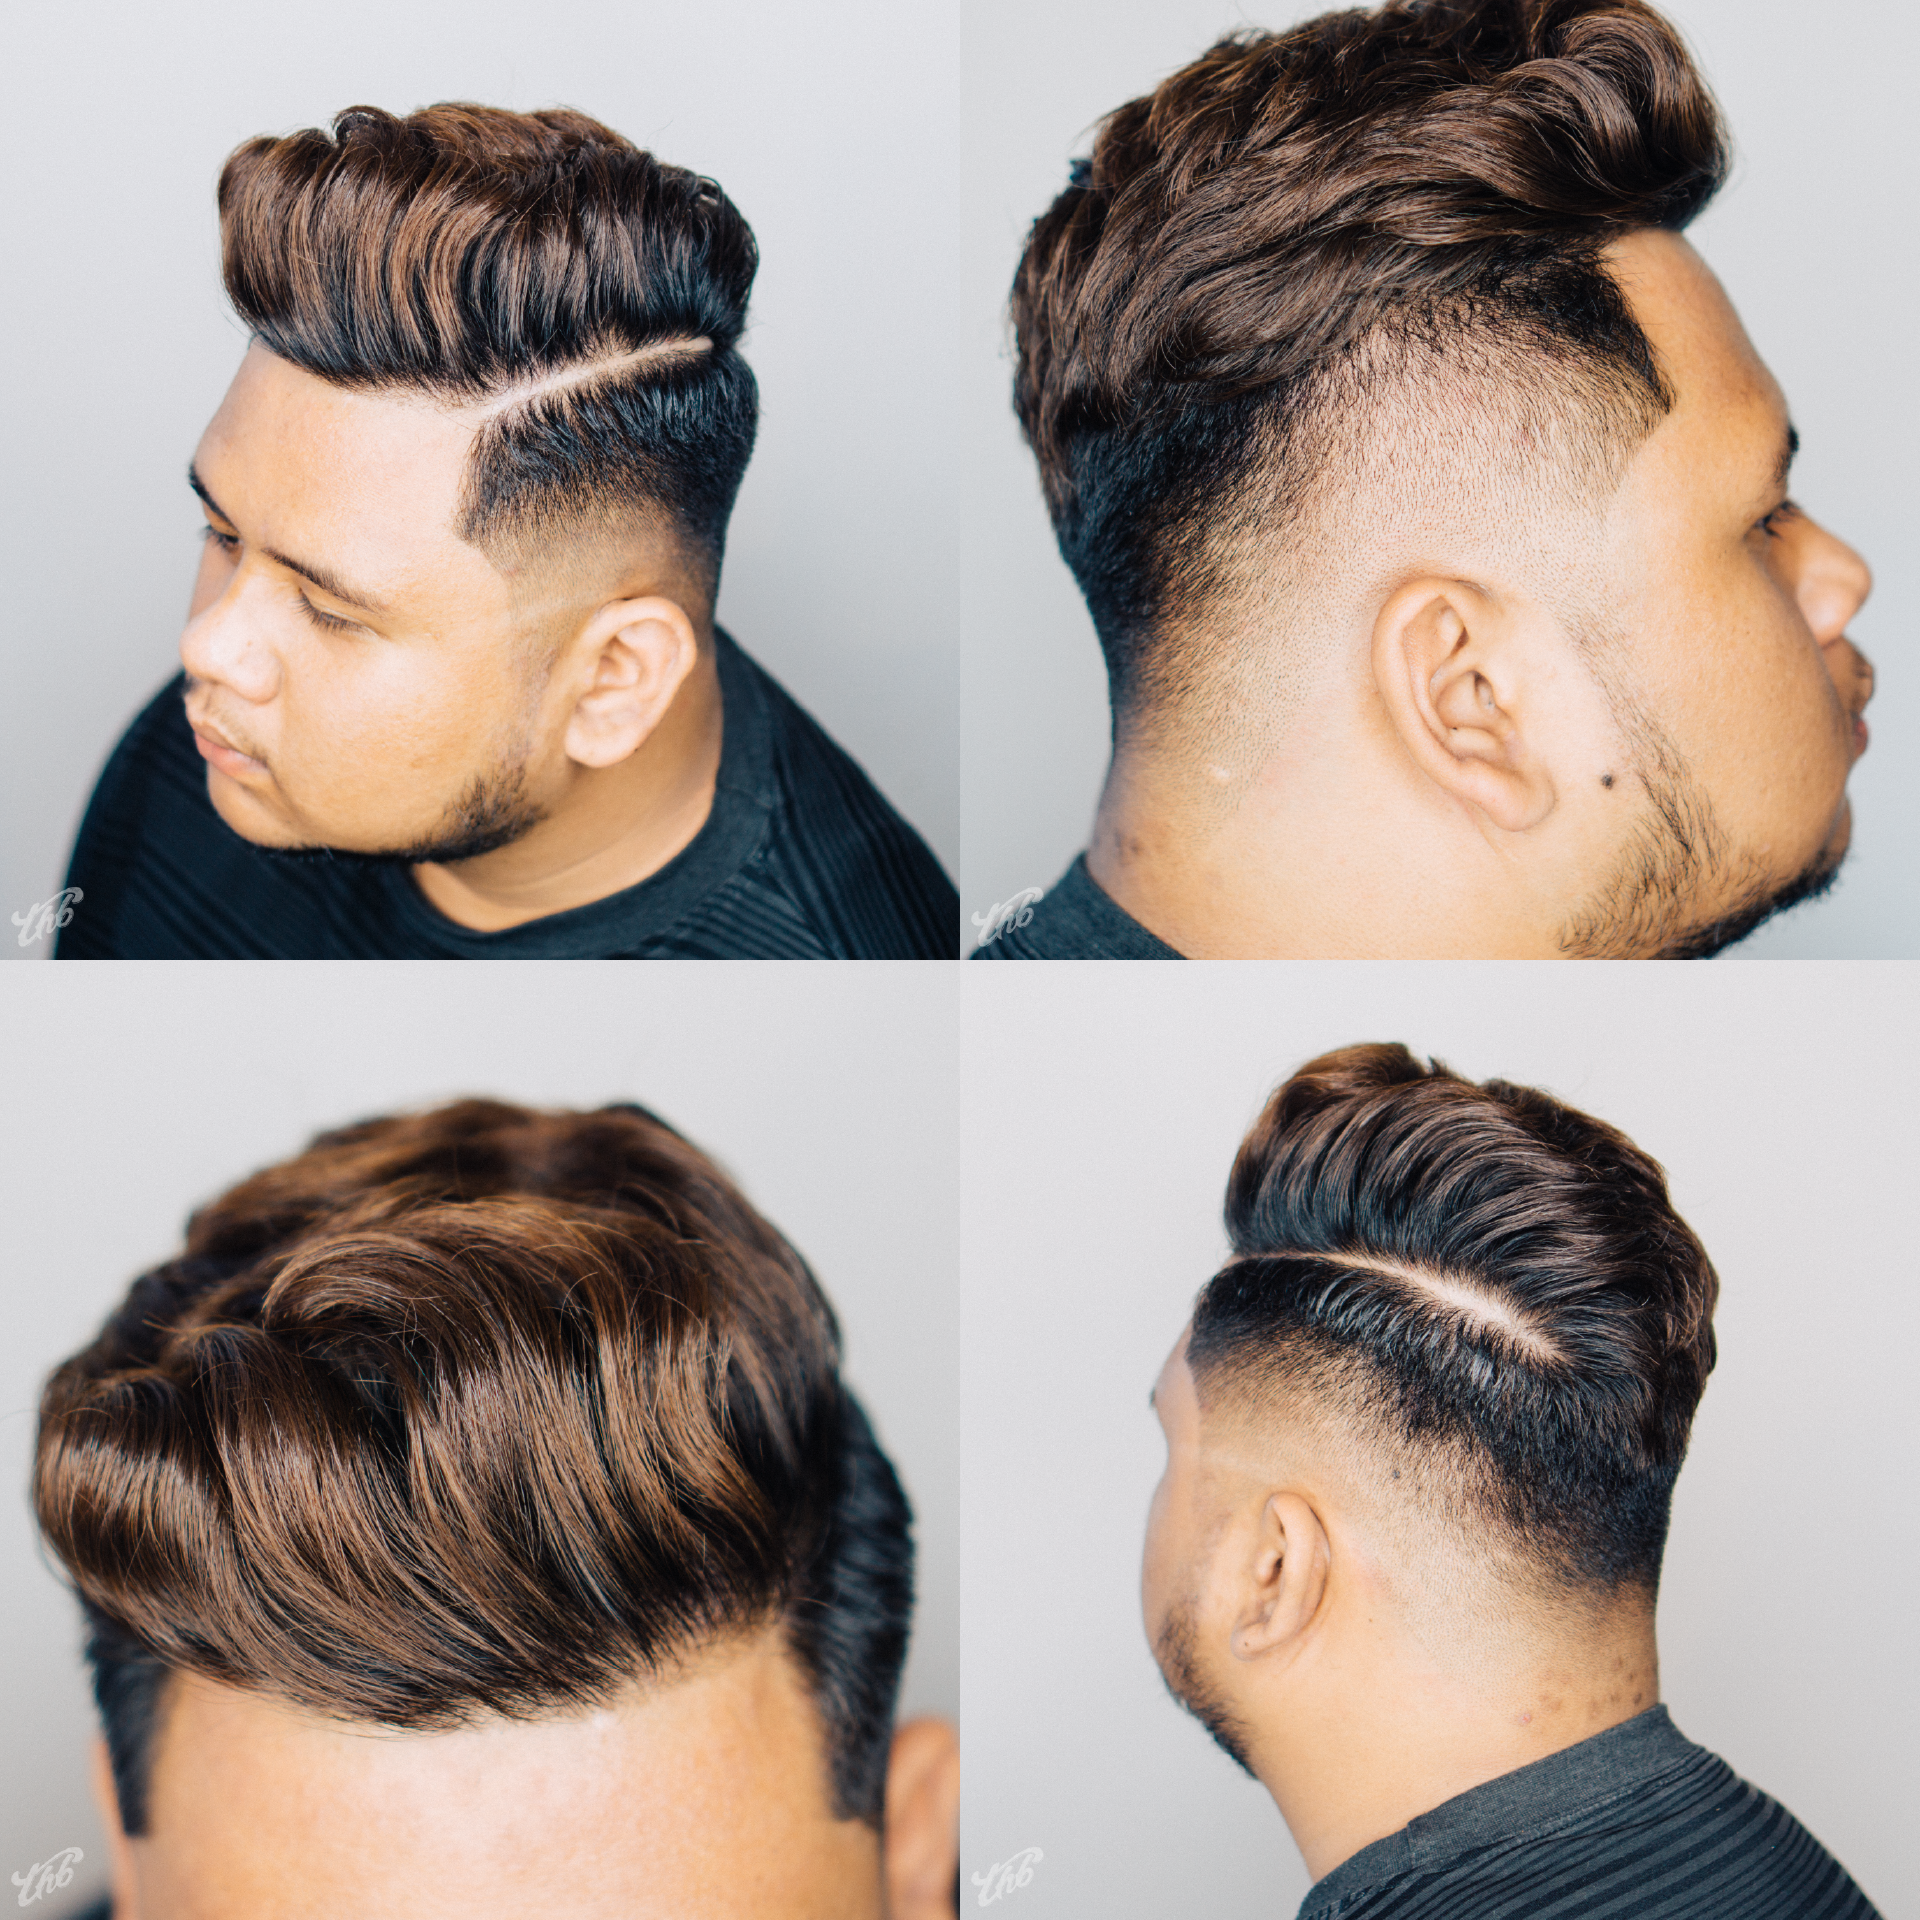 Haircut By Barber Mael Barbermael Thb Asian Pompadour Side Part Medium Fade Zero Fade Messy Top Hairstyle Hairstyle Pompadour Hairstyle Cool Hairstyles